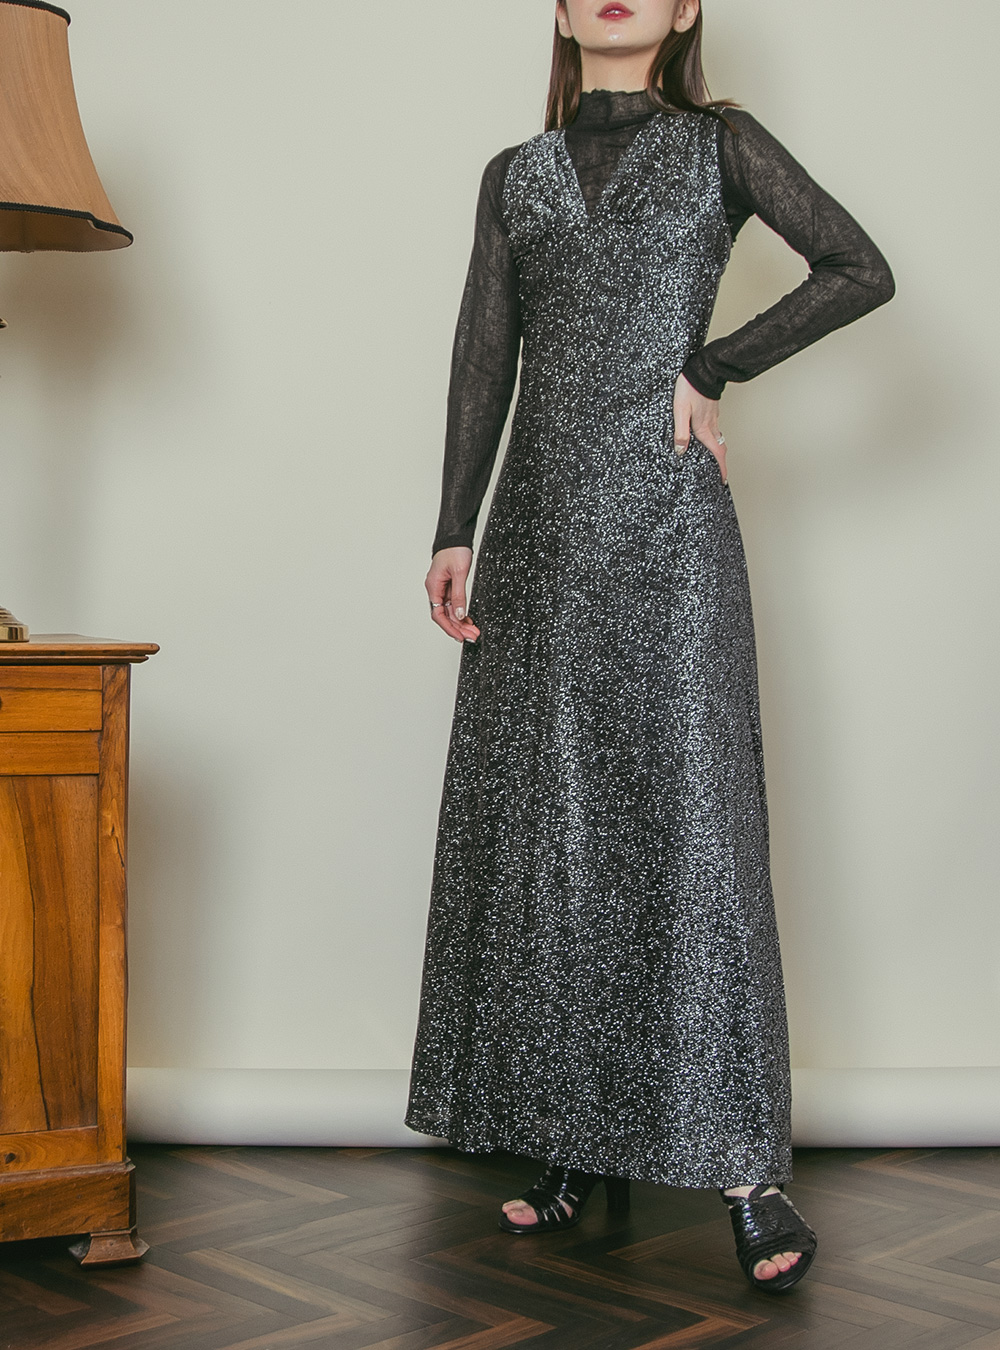 1970's Black Glitter Design Dress